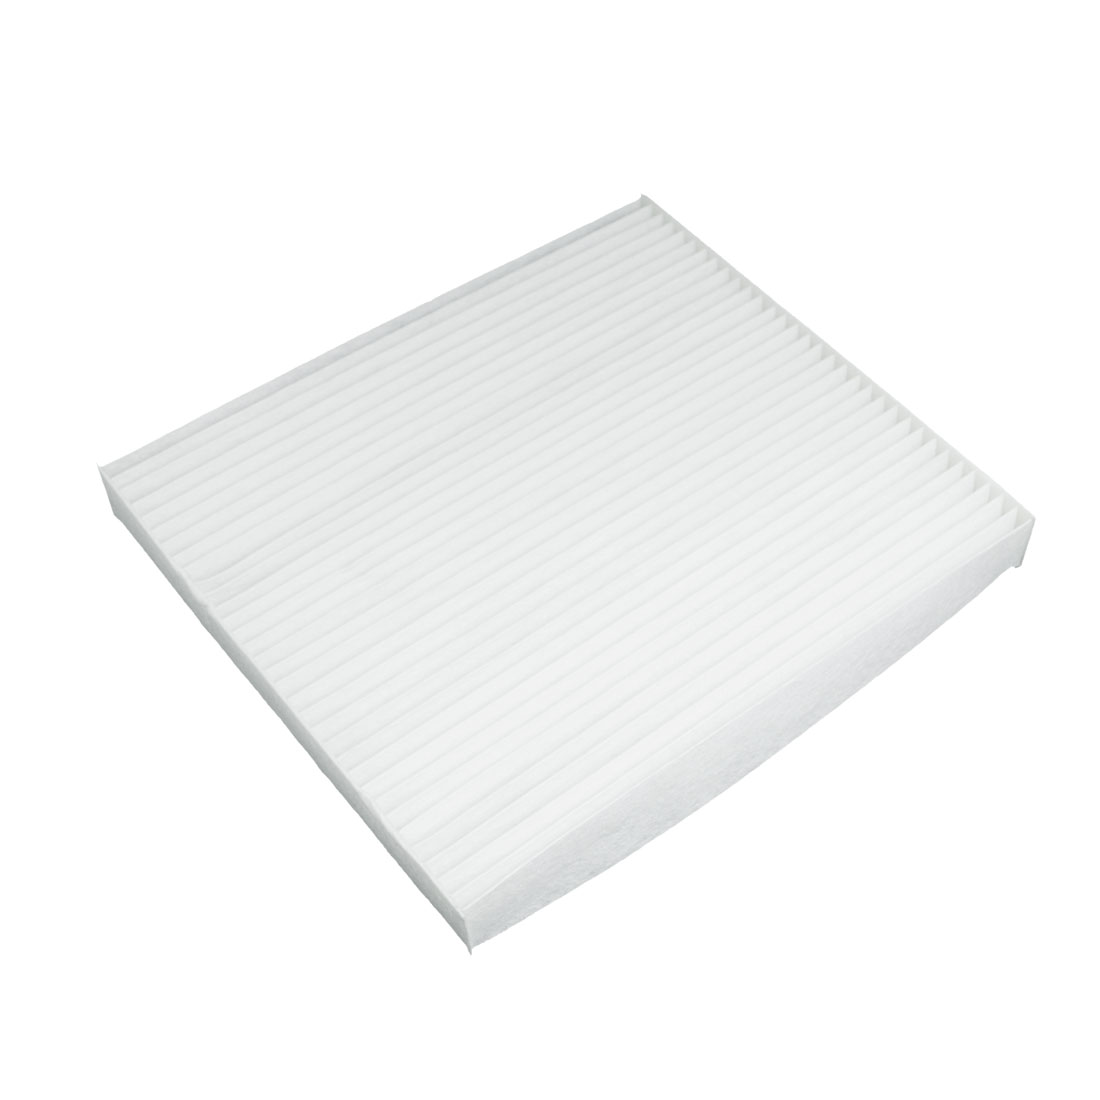 Replacement Non-woven Cotton A/C Cabin Air Filter for Mazda 6